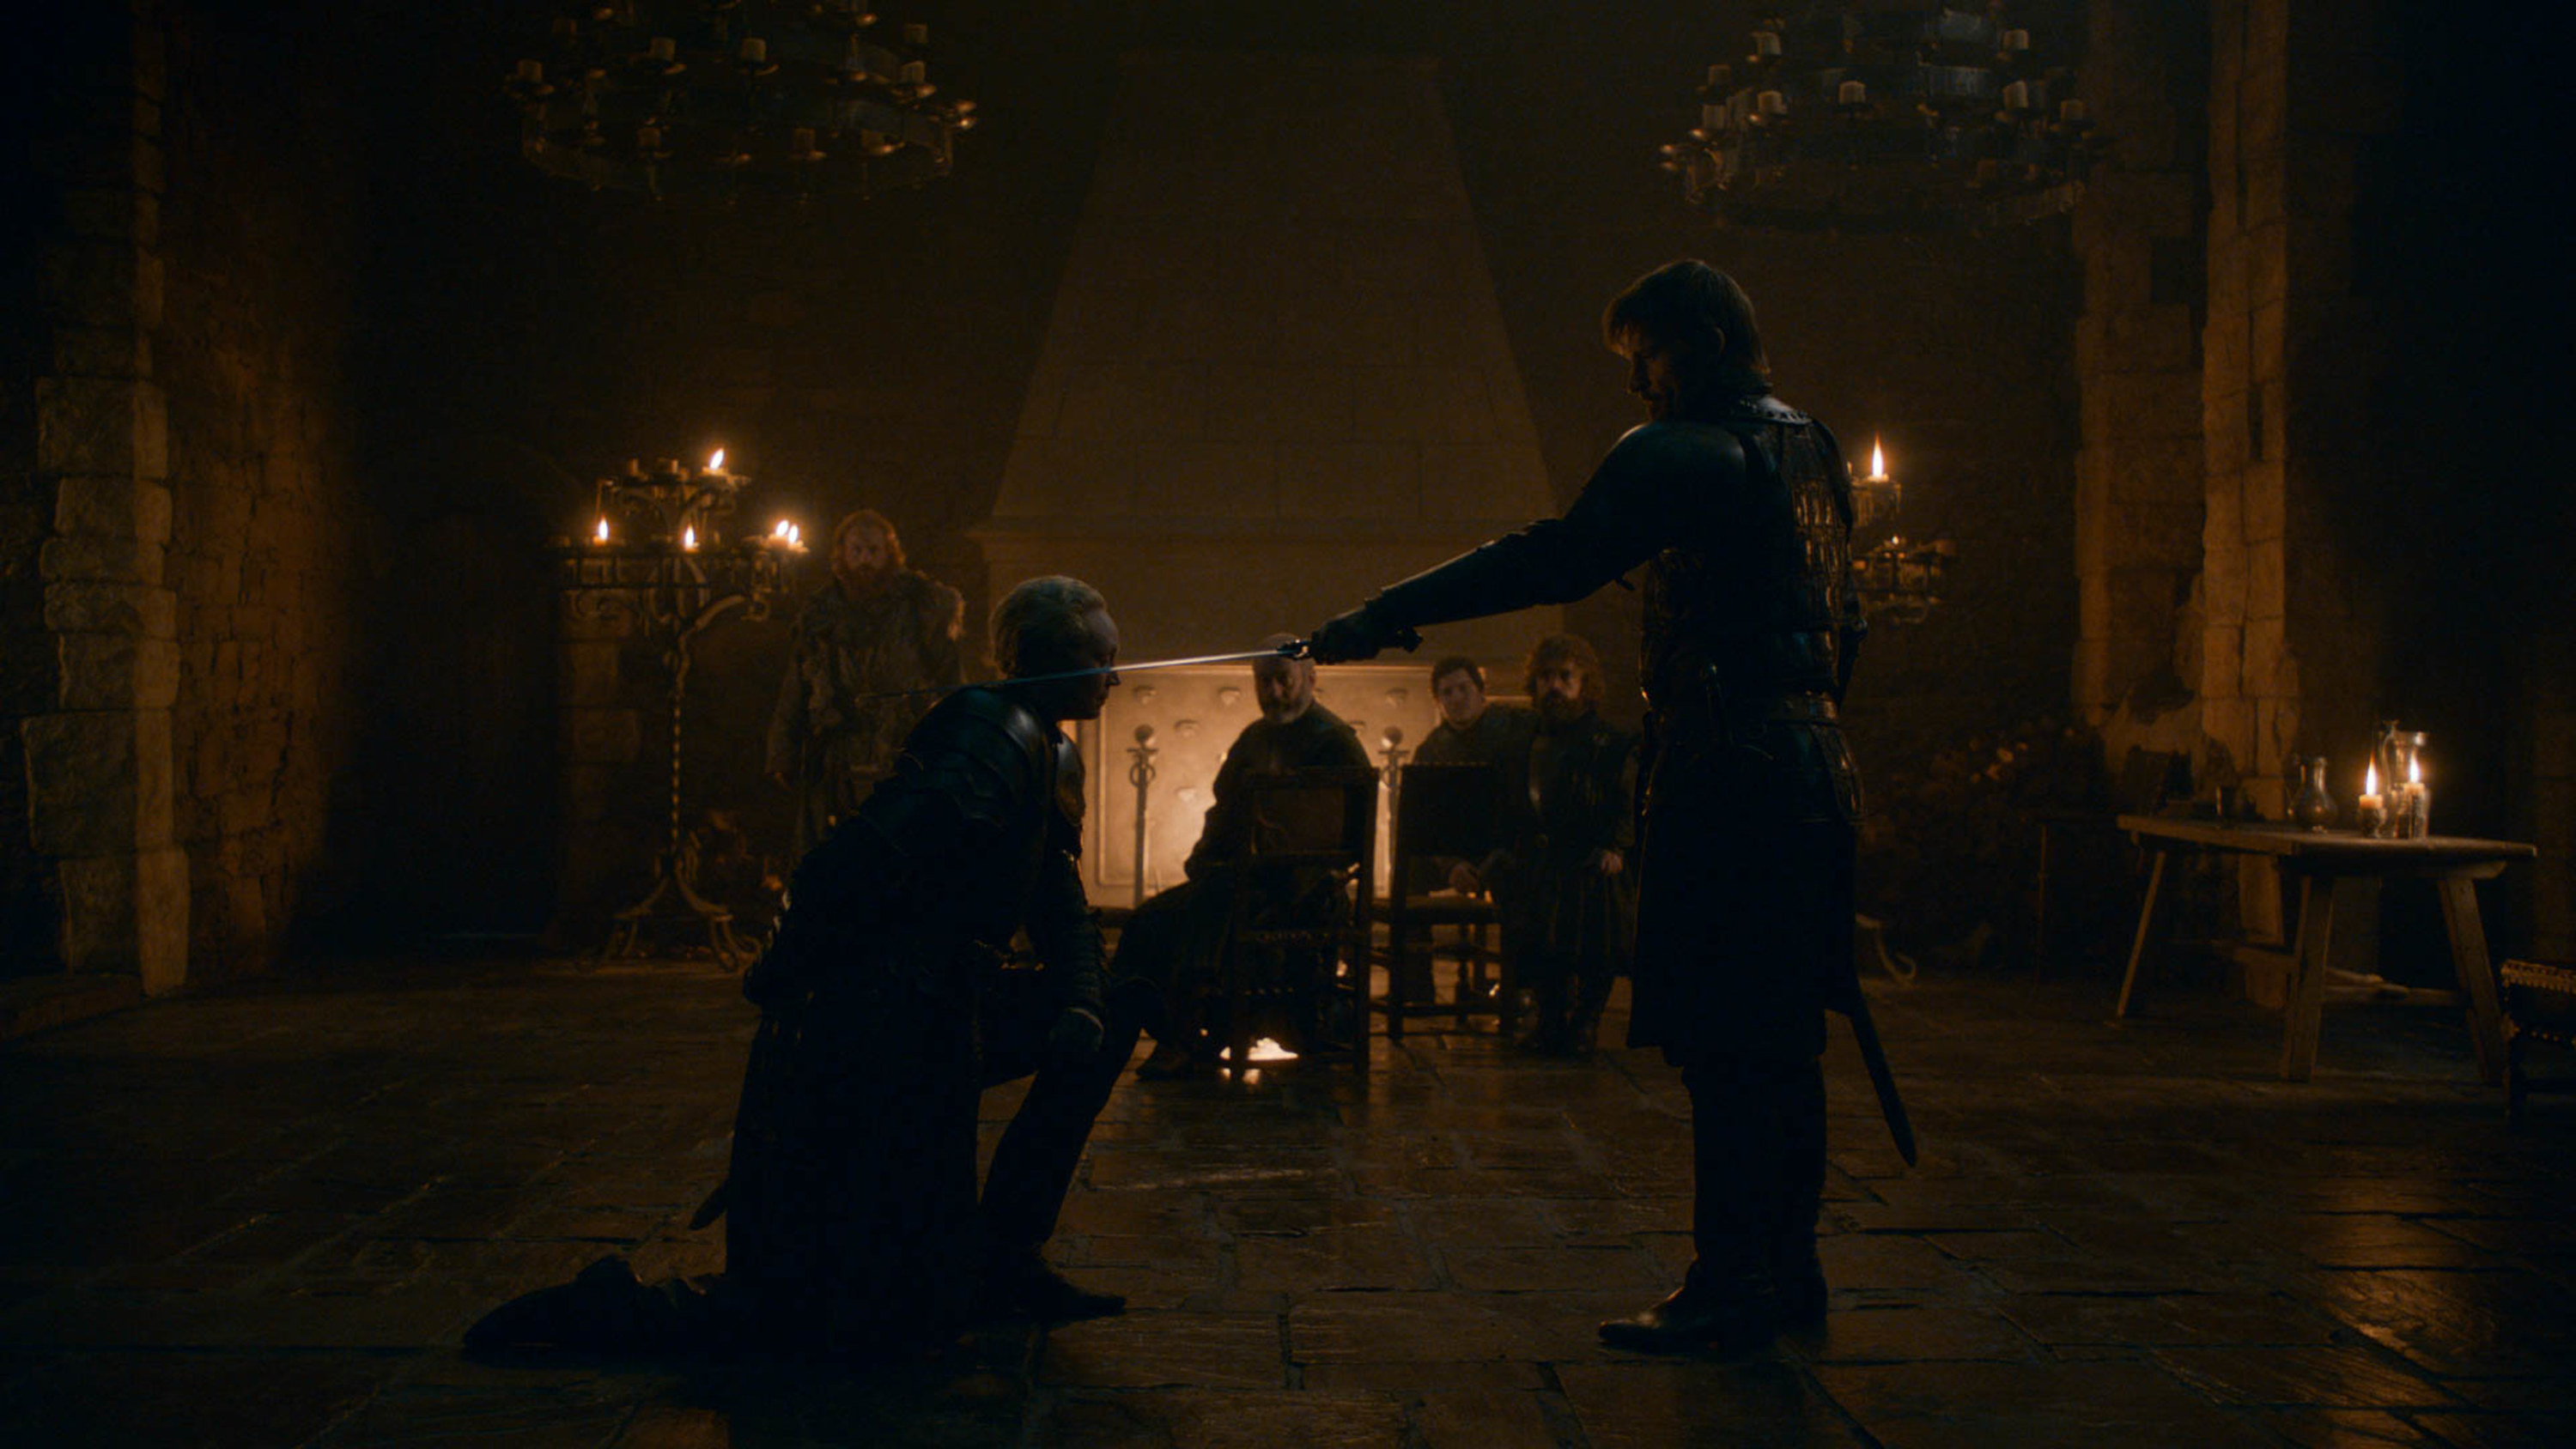 Still from Game of Thrones: Brienne kneels before Jaime as he knights her with his sword; Davos, Tyrion, Tormund and Podrick look on in the background